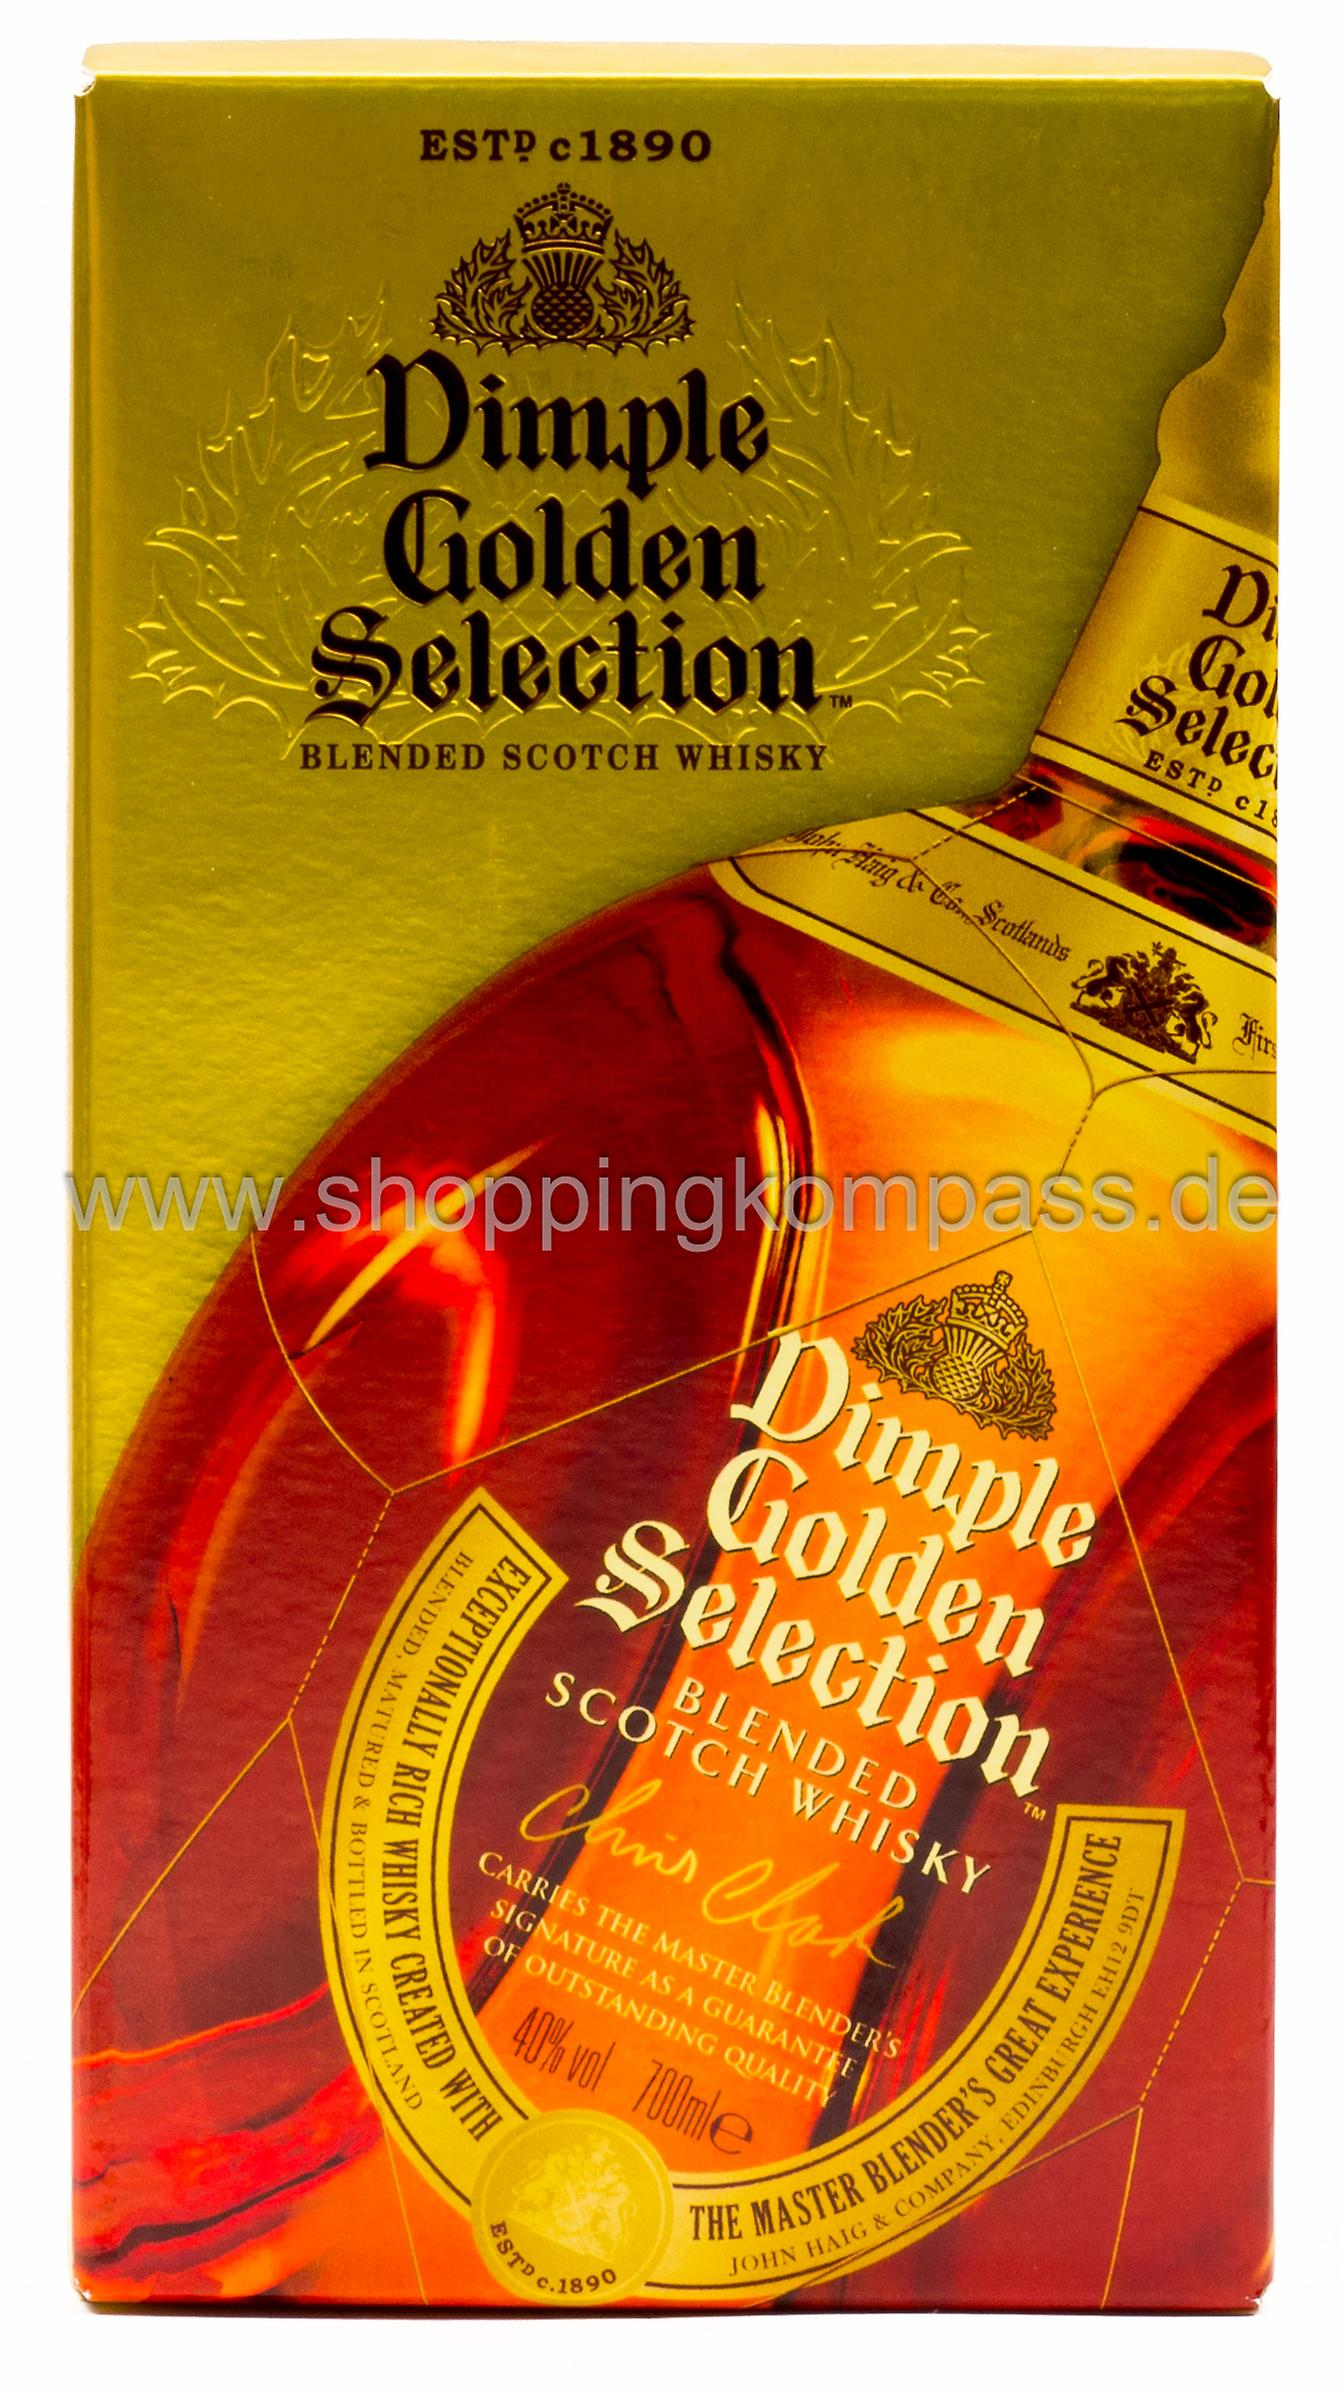 Dimpel Golden Selection Blended Scotch Whiskey 0,7 l Glas